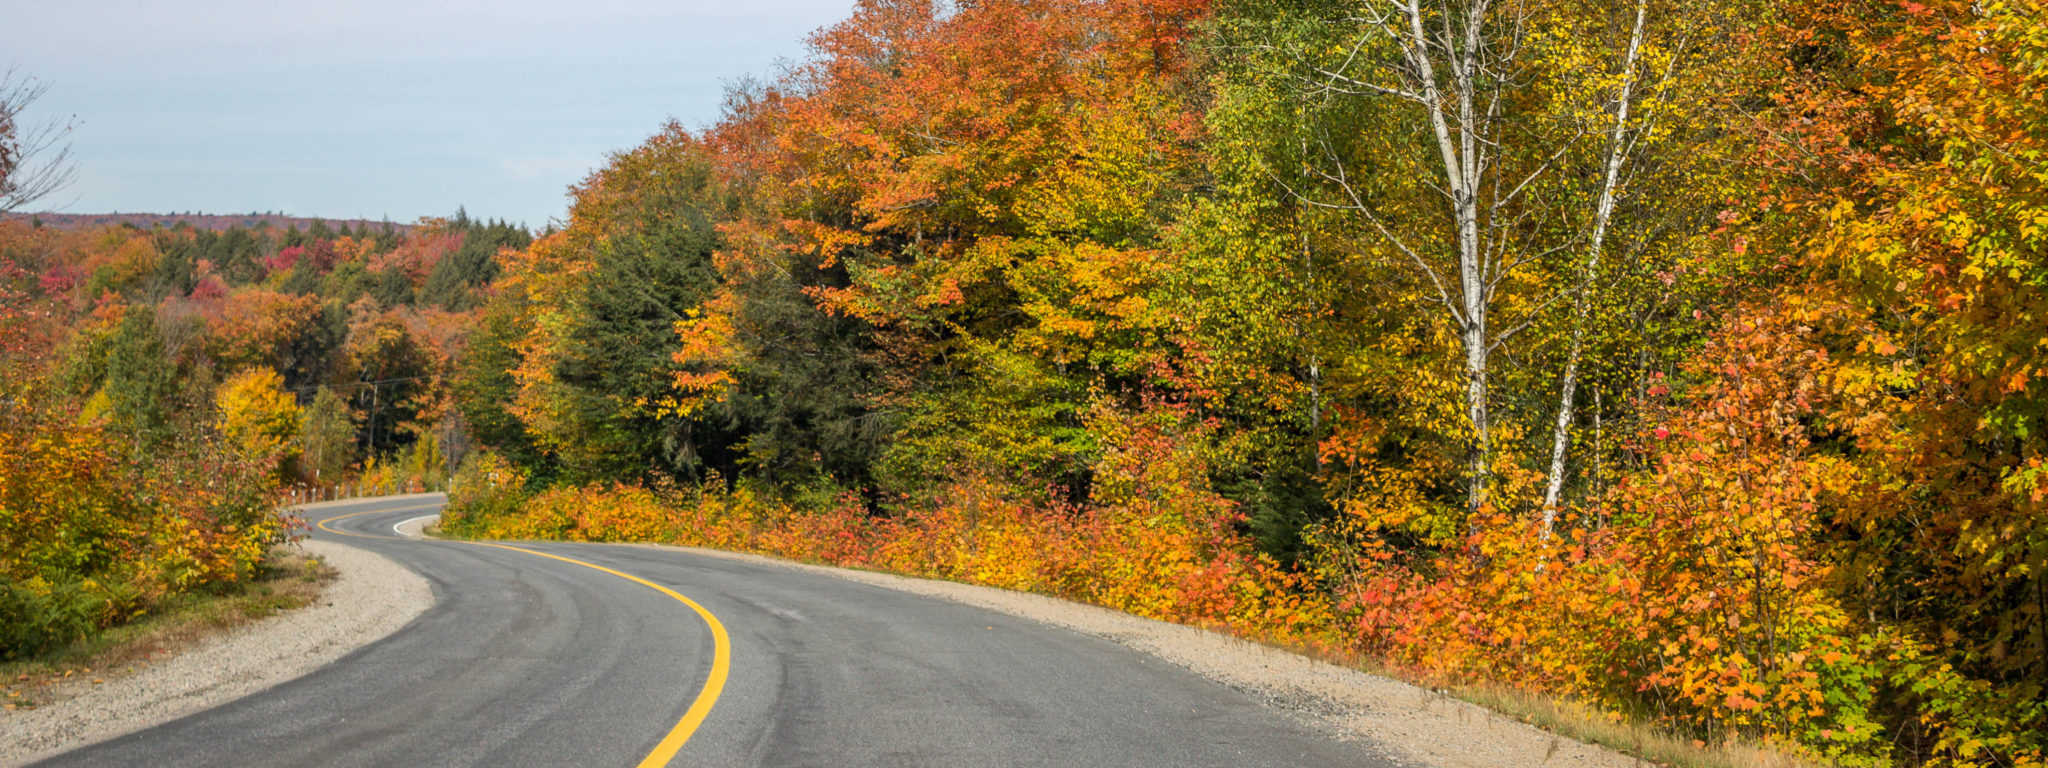 Ontario Road Trips From Toronto - Curious Travel Bug